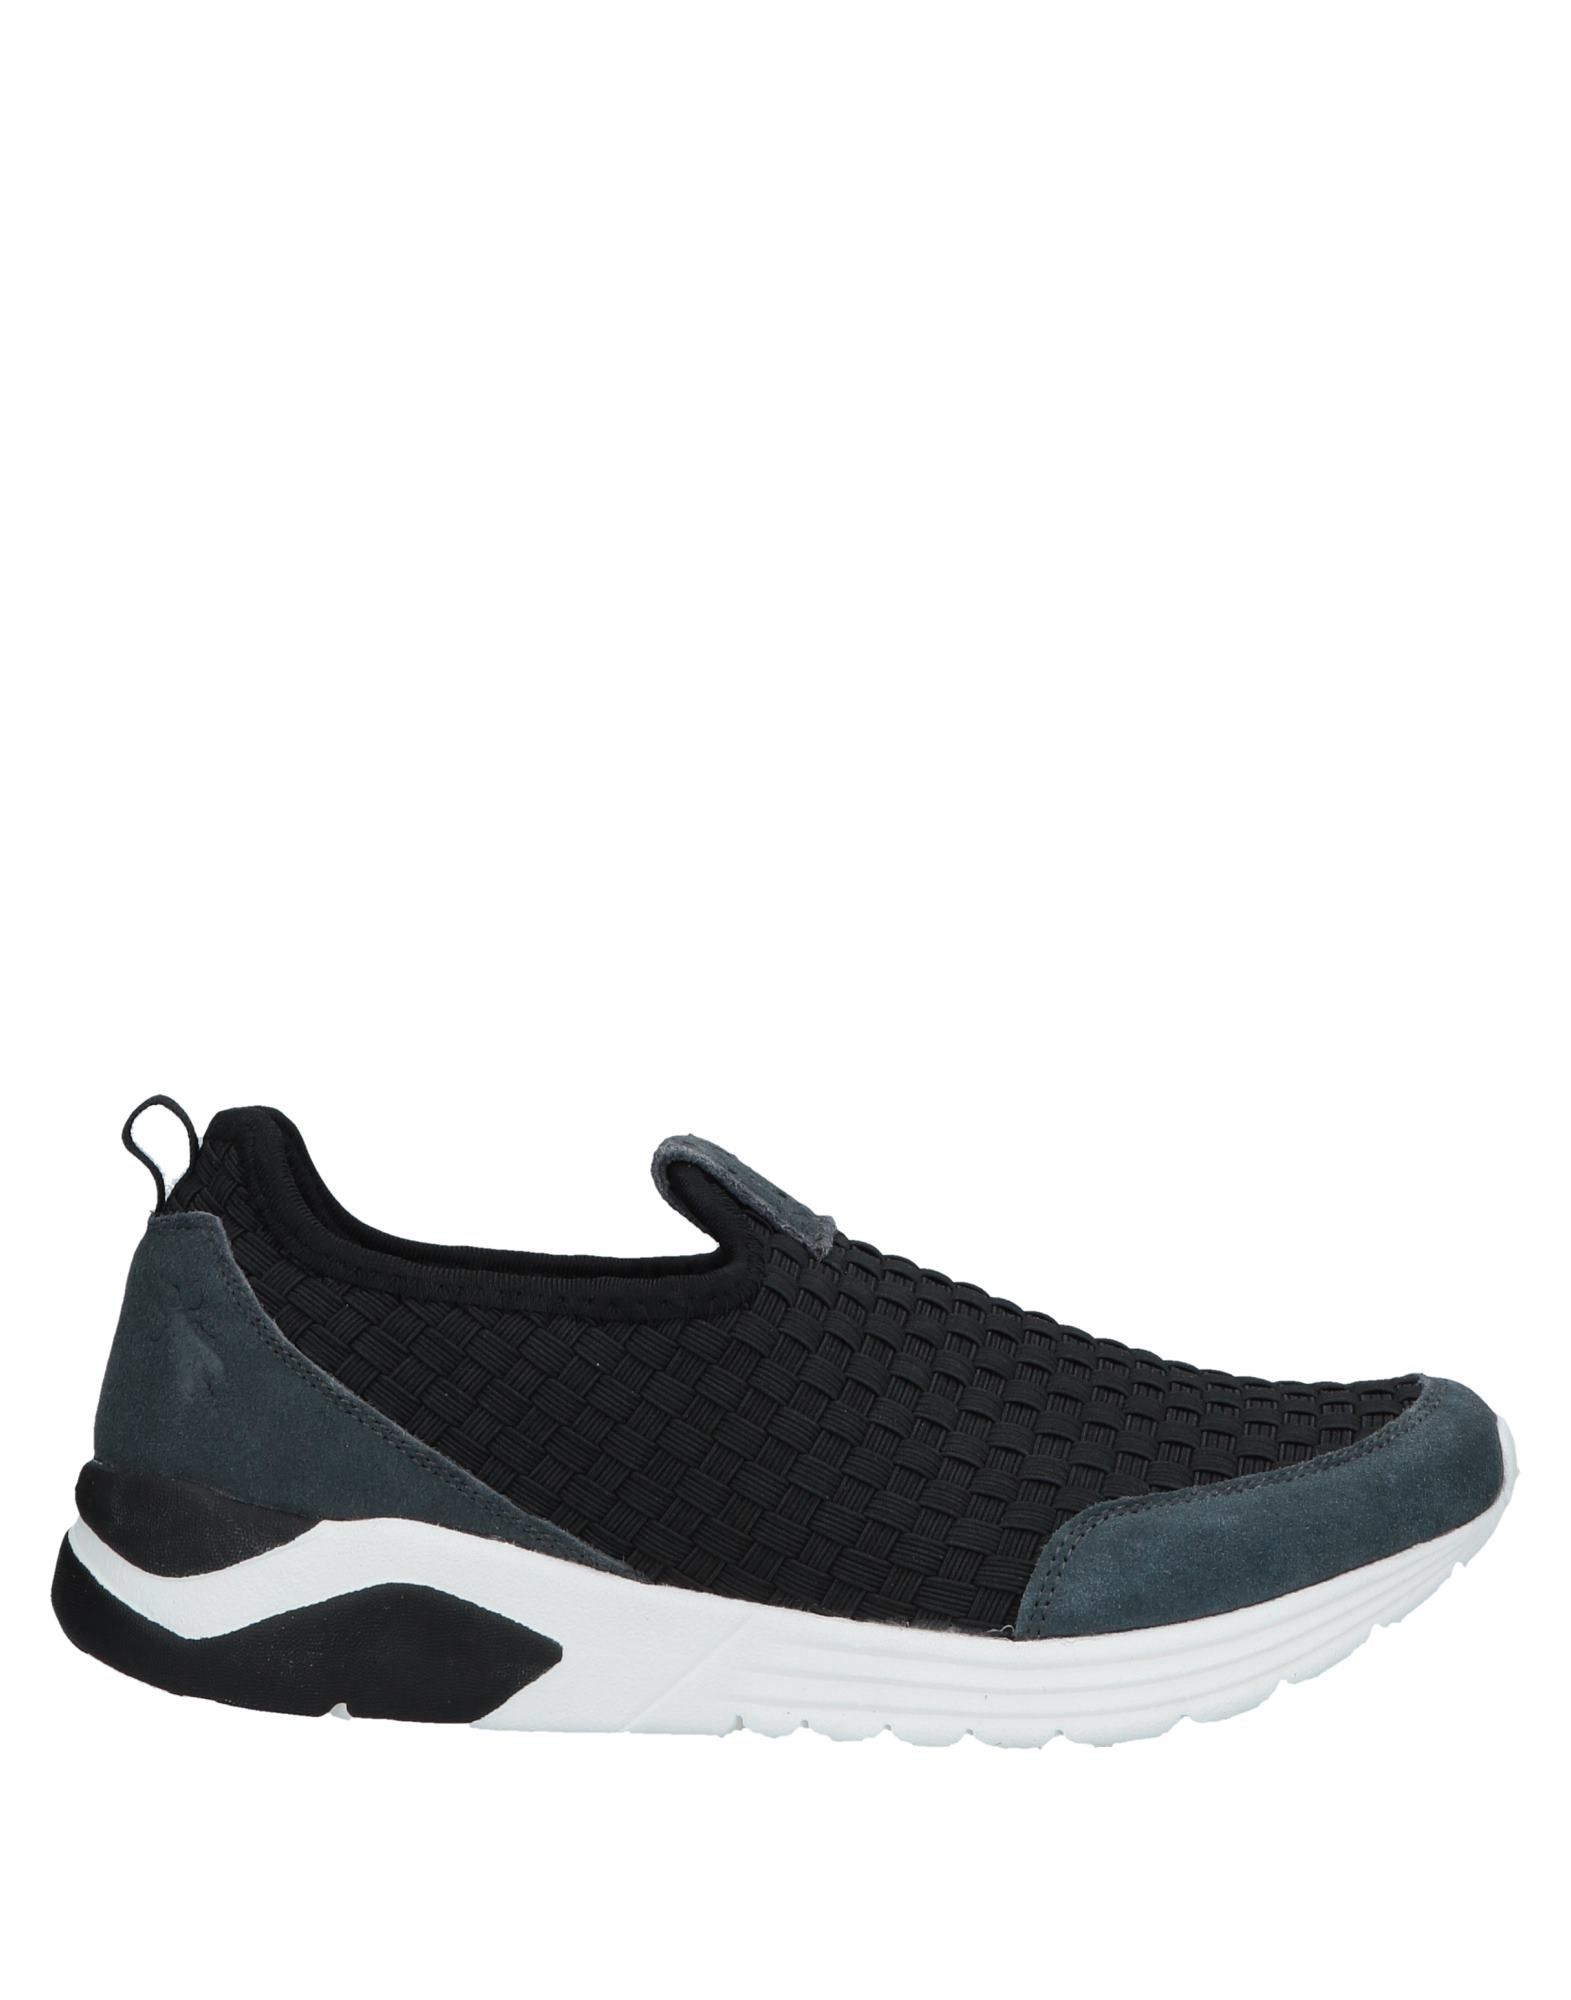 FLY LONDON Sneakers. leather, suede effect, no appliqués, solid color, round toeline, flat, fully lined, rubber cleated sole, contains non-textile parts of animal origin, small sized. Soft Leather, Synthetic fibers